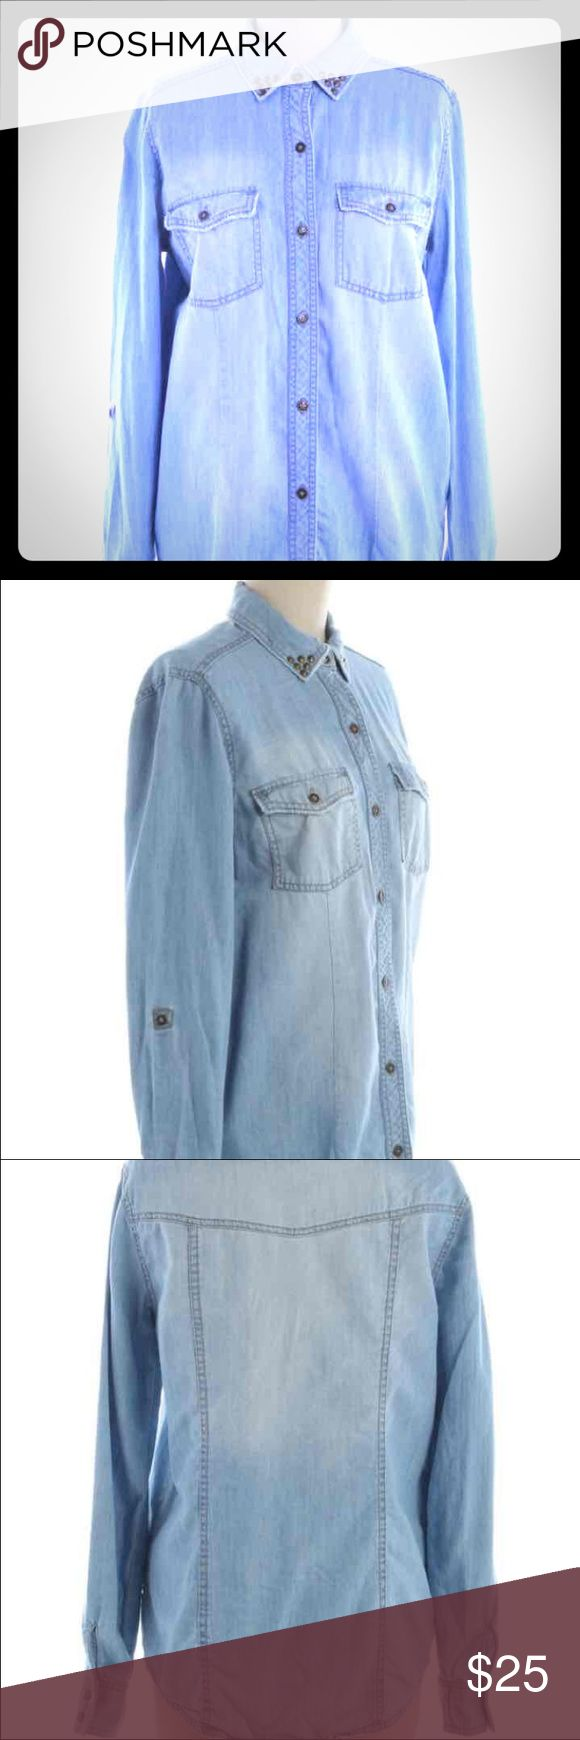 """Rock & Republic button down Chambray Rock & Republic button down Chambray Shirt. Has bejeweled brassy gold beads on the collar. Can also be turned into a 2/3 rd's length sleeve shirt. Cotton & Machine Washable.  Bust- 34"""" Waist- 32"""" Sleeve Length -24"""" Length -35"""" Rock & Republic Tops Button Down Shirts"""